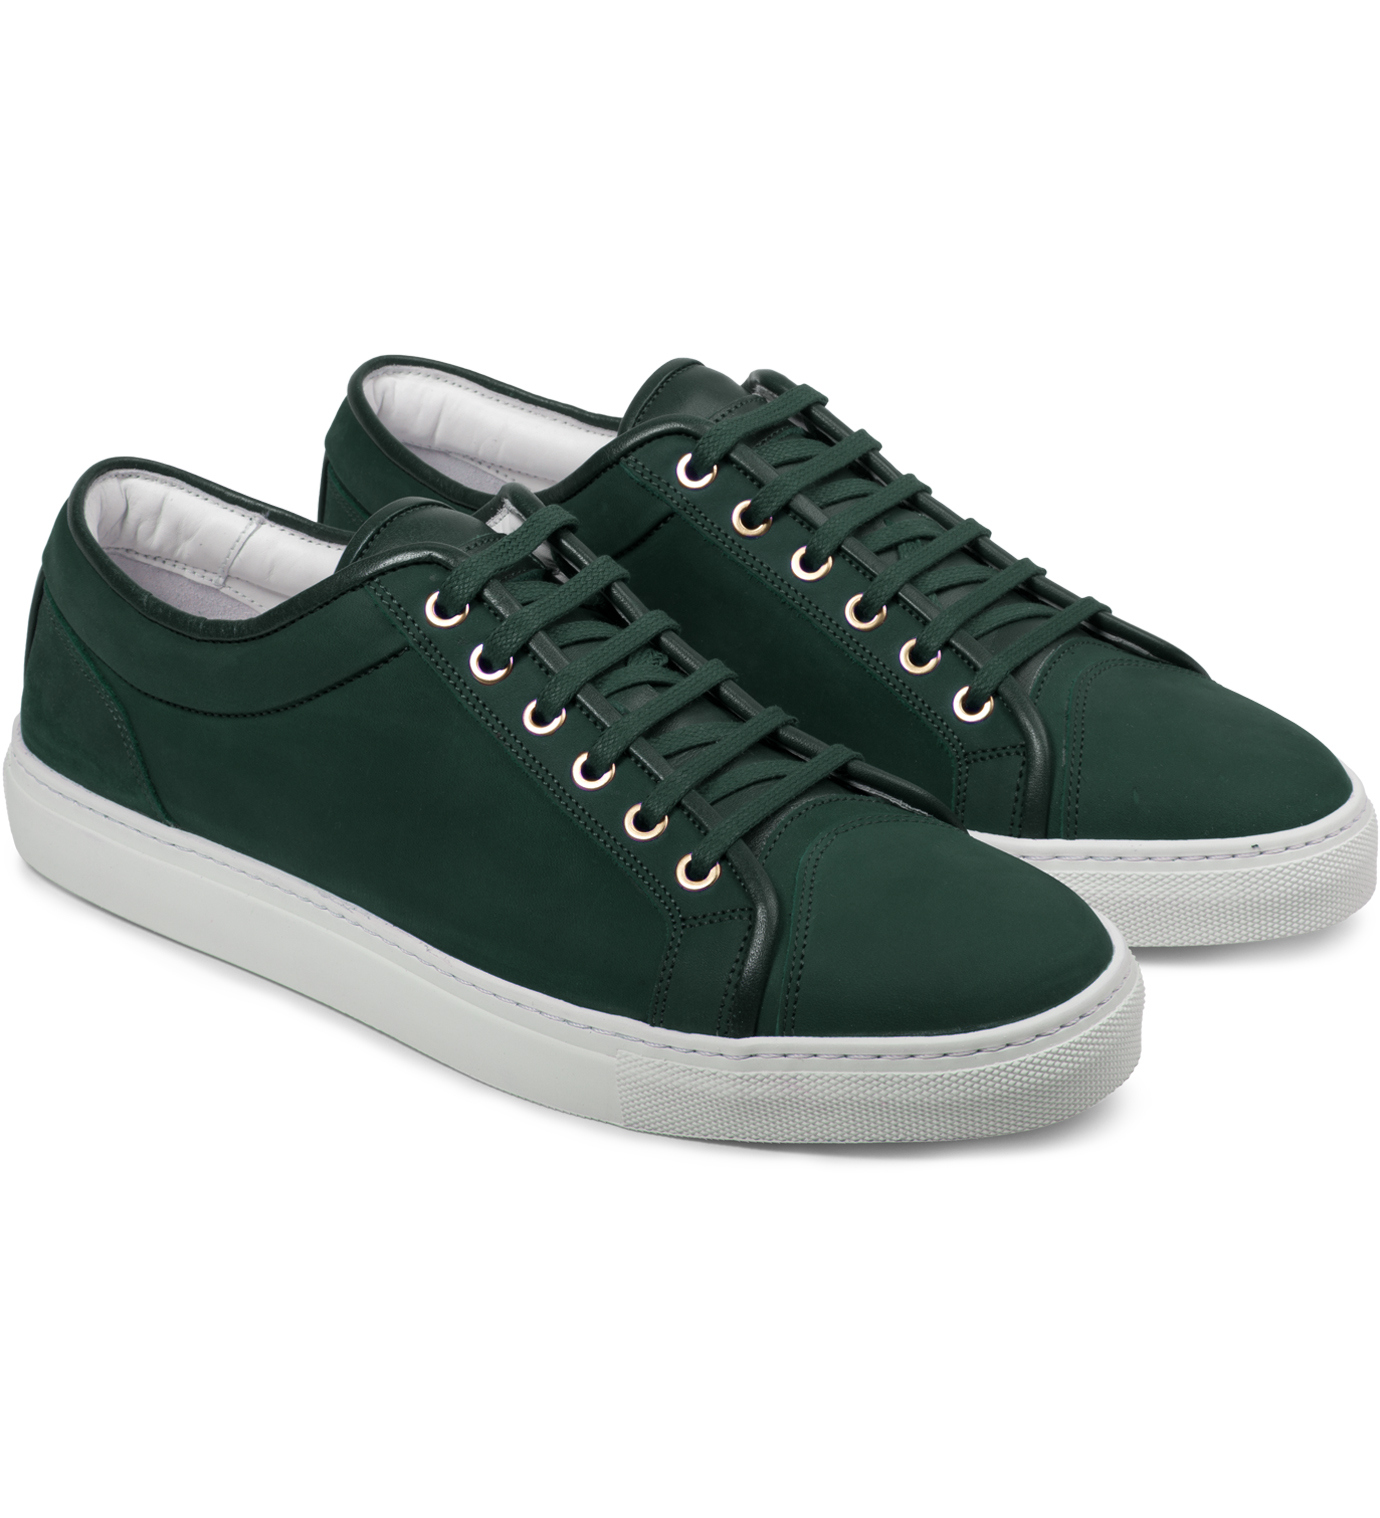 Etq money green low top 1 sneakers